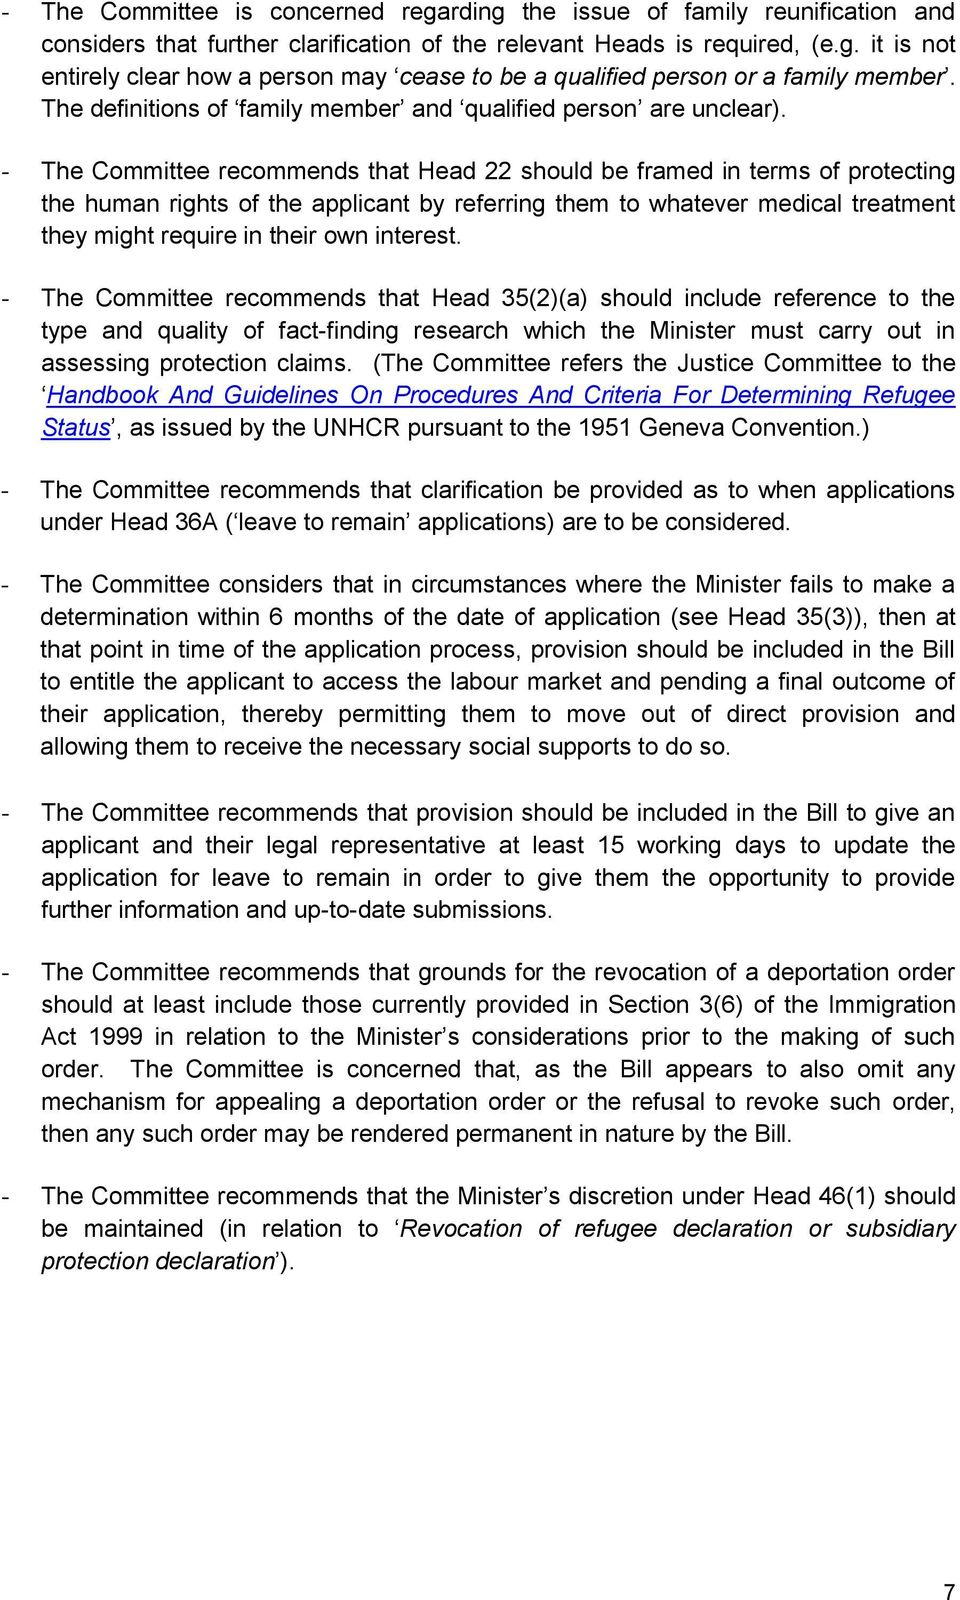 - The Committee recommends that Head 22 should be framed in terms of protecting the human rights of the applicant by referring them to whatever medical treatment they might require in their own